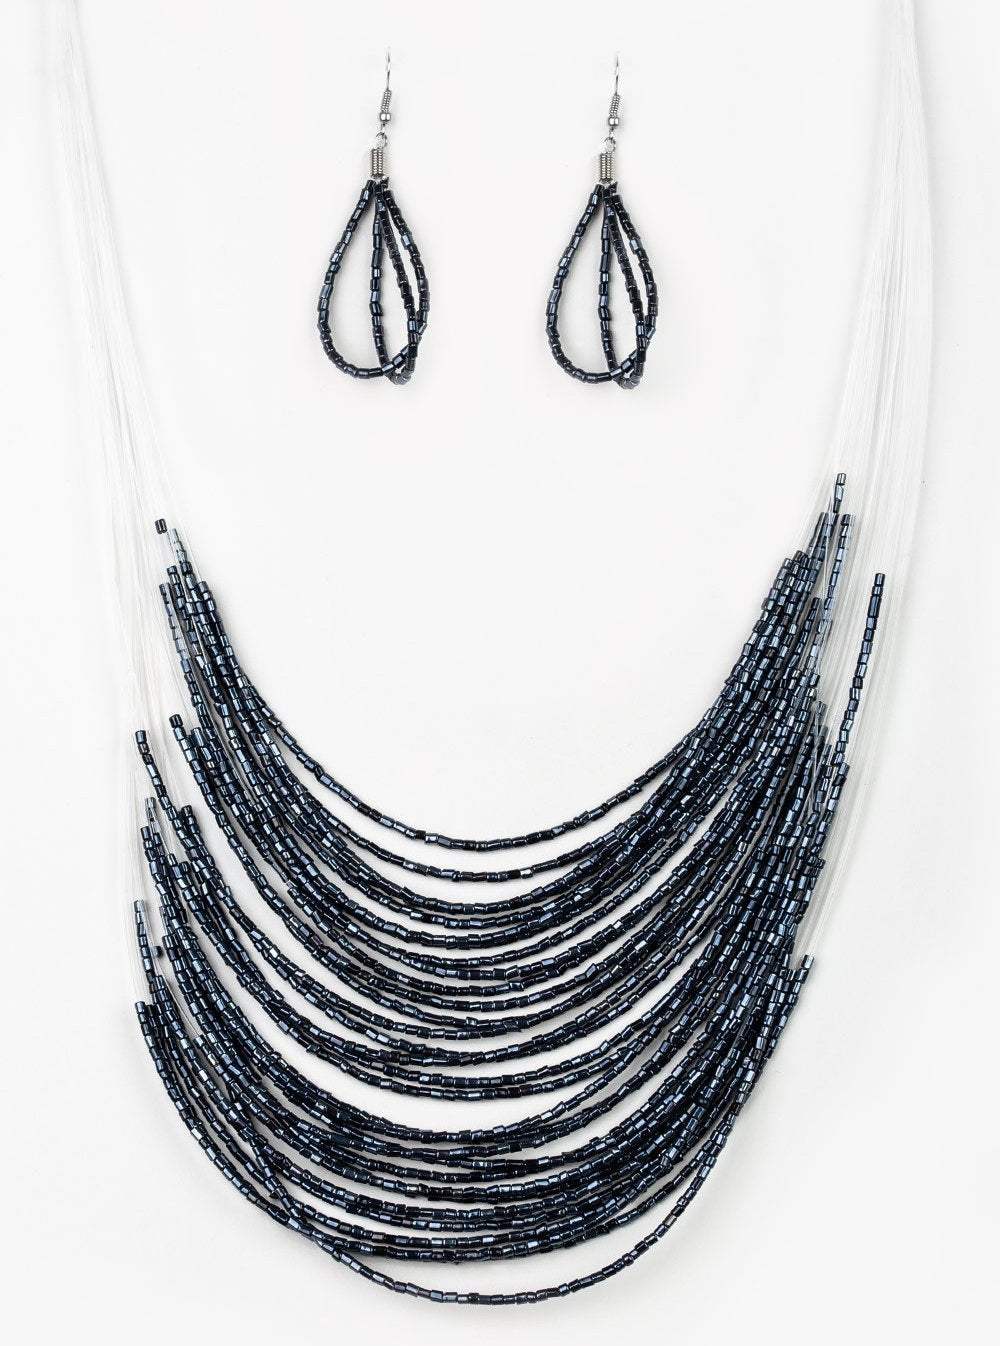 Paparazzi Accessories - Catwalk Queen - Paparazzi Blue Metallic Seed Bead Necklace and Earring Set - Necklaces